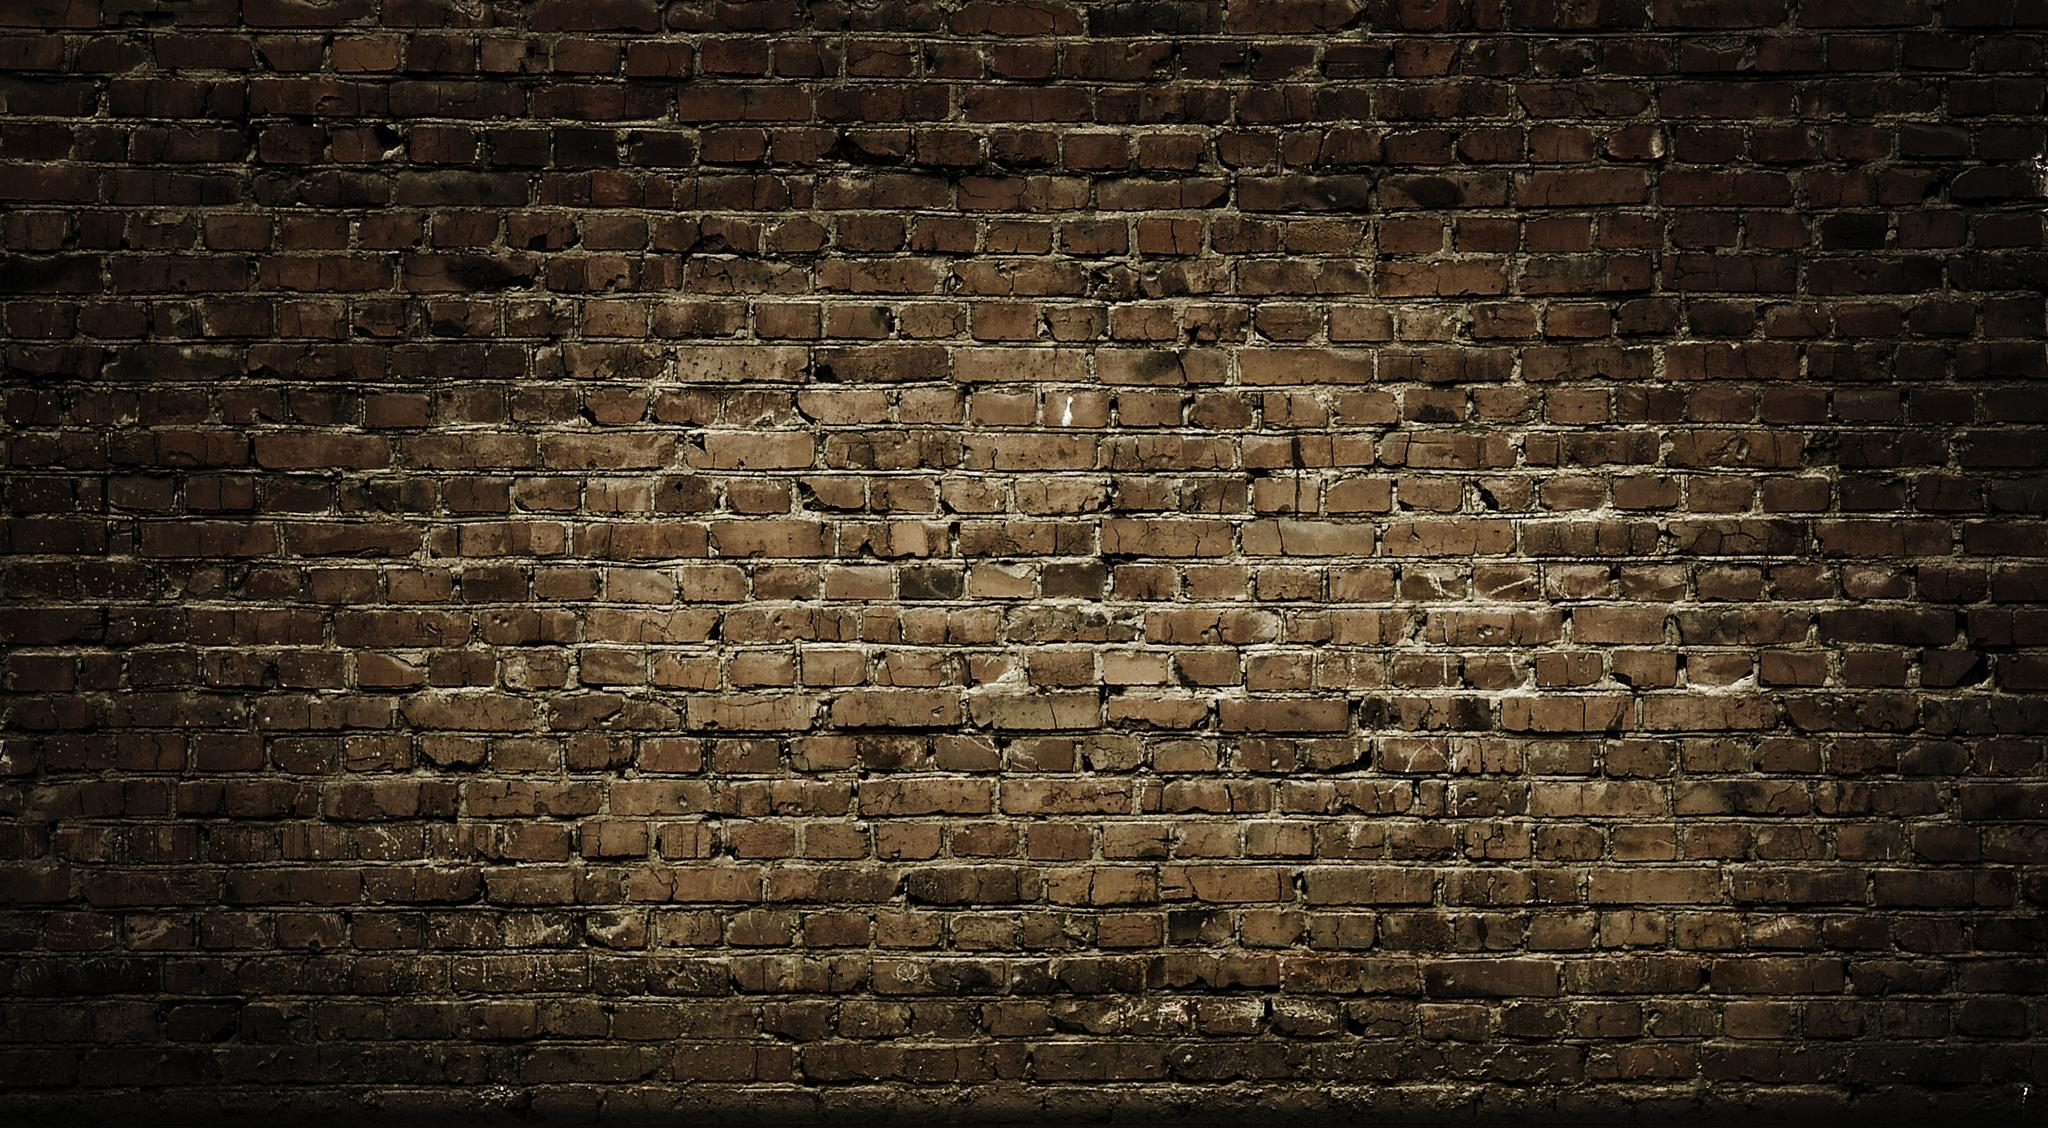 Brick Wall Interior Interior With Brick Wall Hd Wallpapers Hd Backgrounds